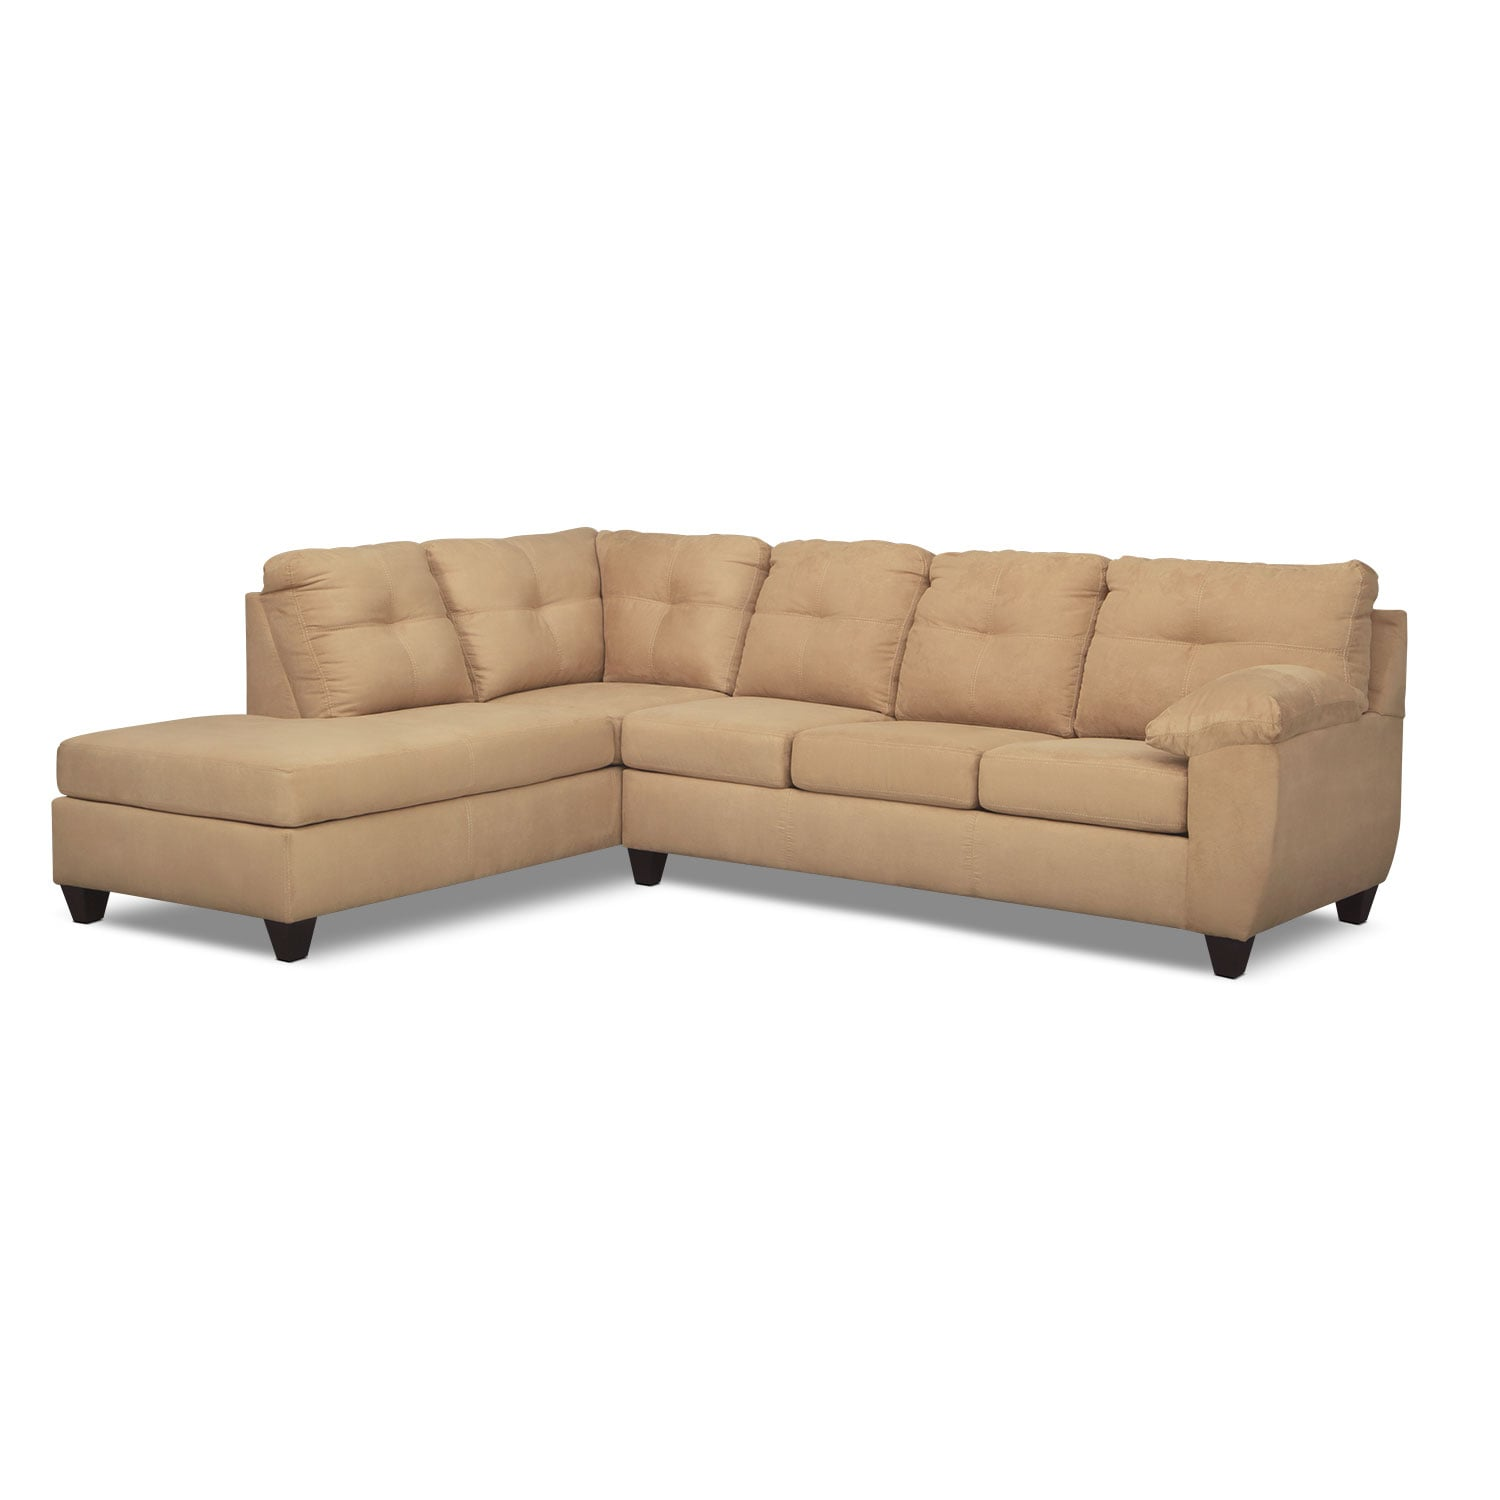 Living Room Furniture - Rialto 2-Piece Memory Foam Sleeper Sectional with Left-Facing Chaise - Brown